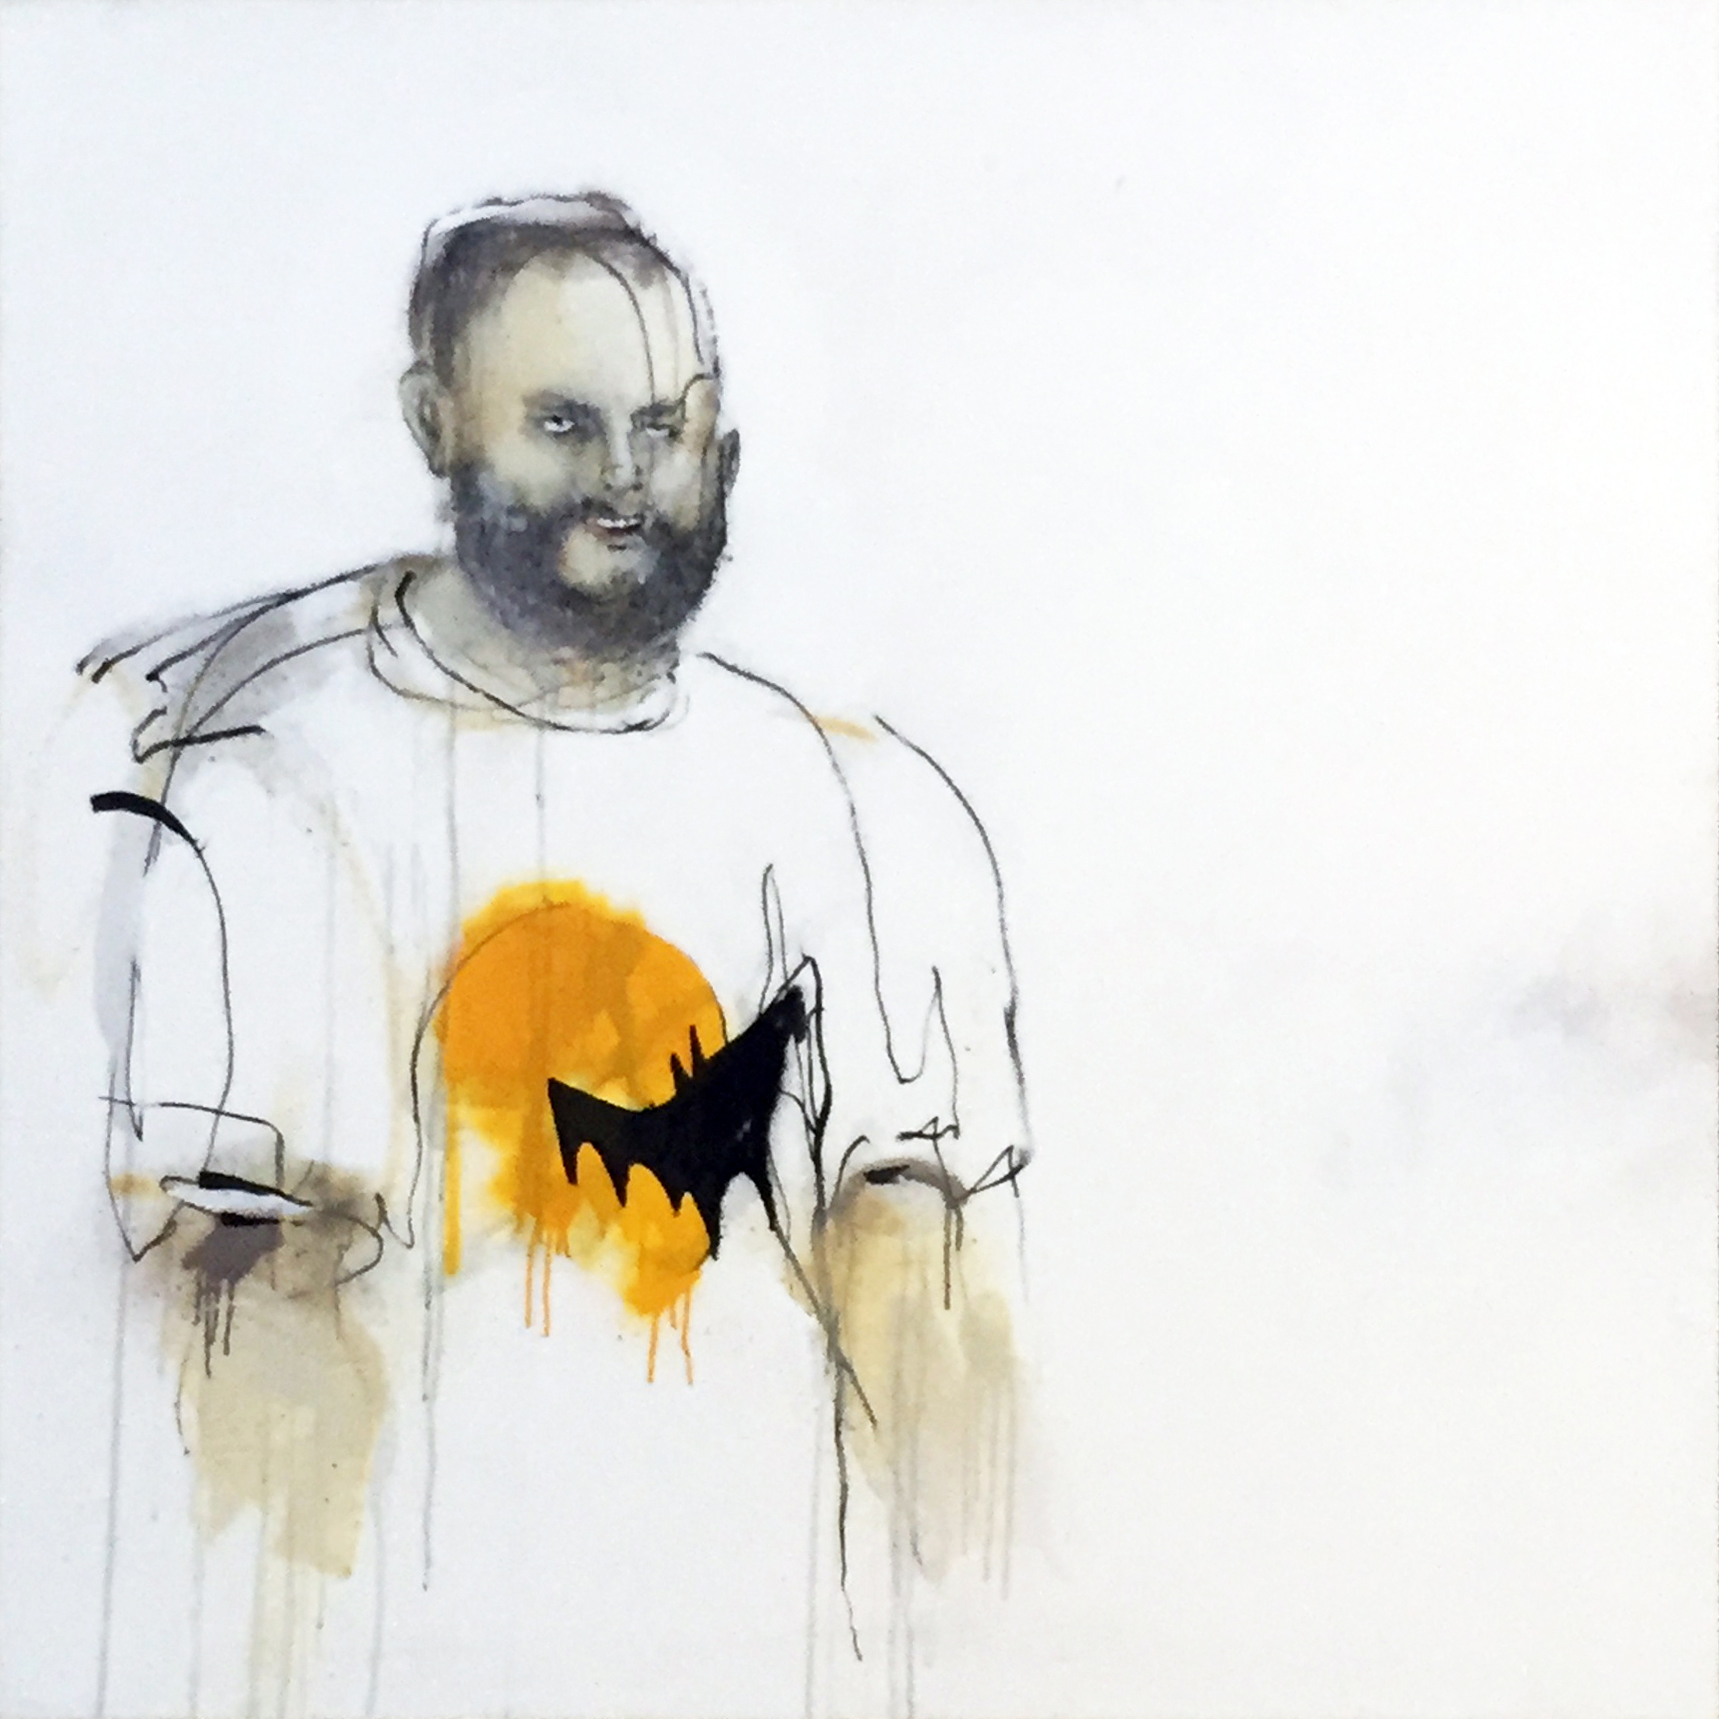 Anthony Lister, Third Cup of Fiasco' 120 x 120 cm, available